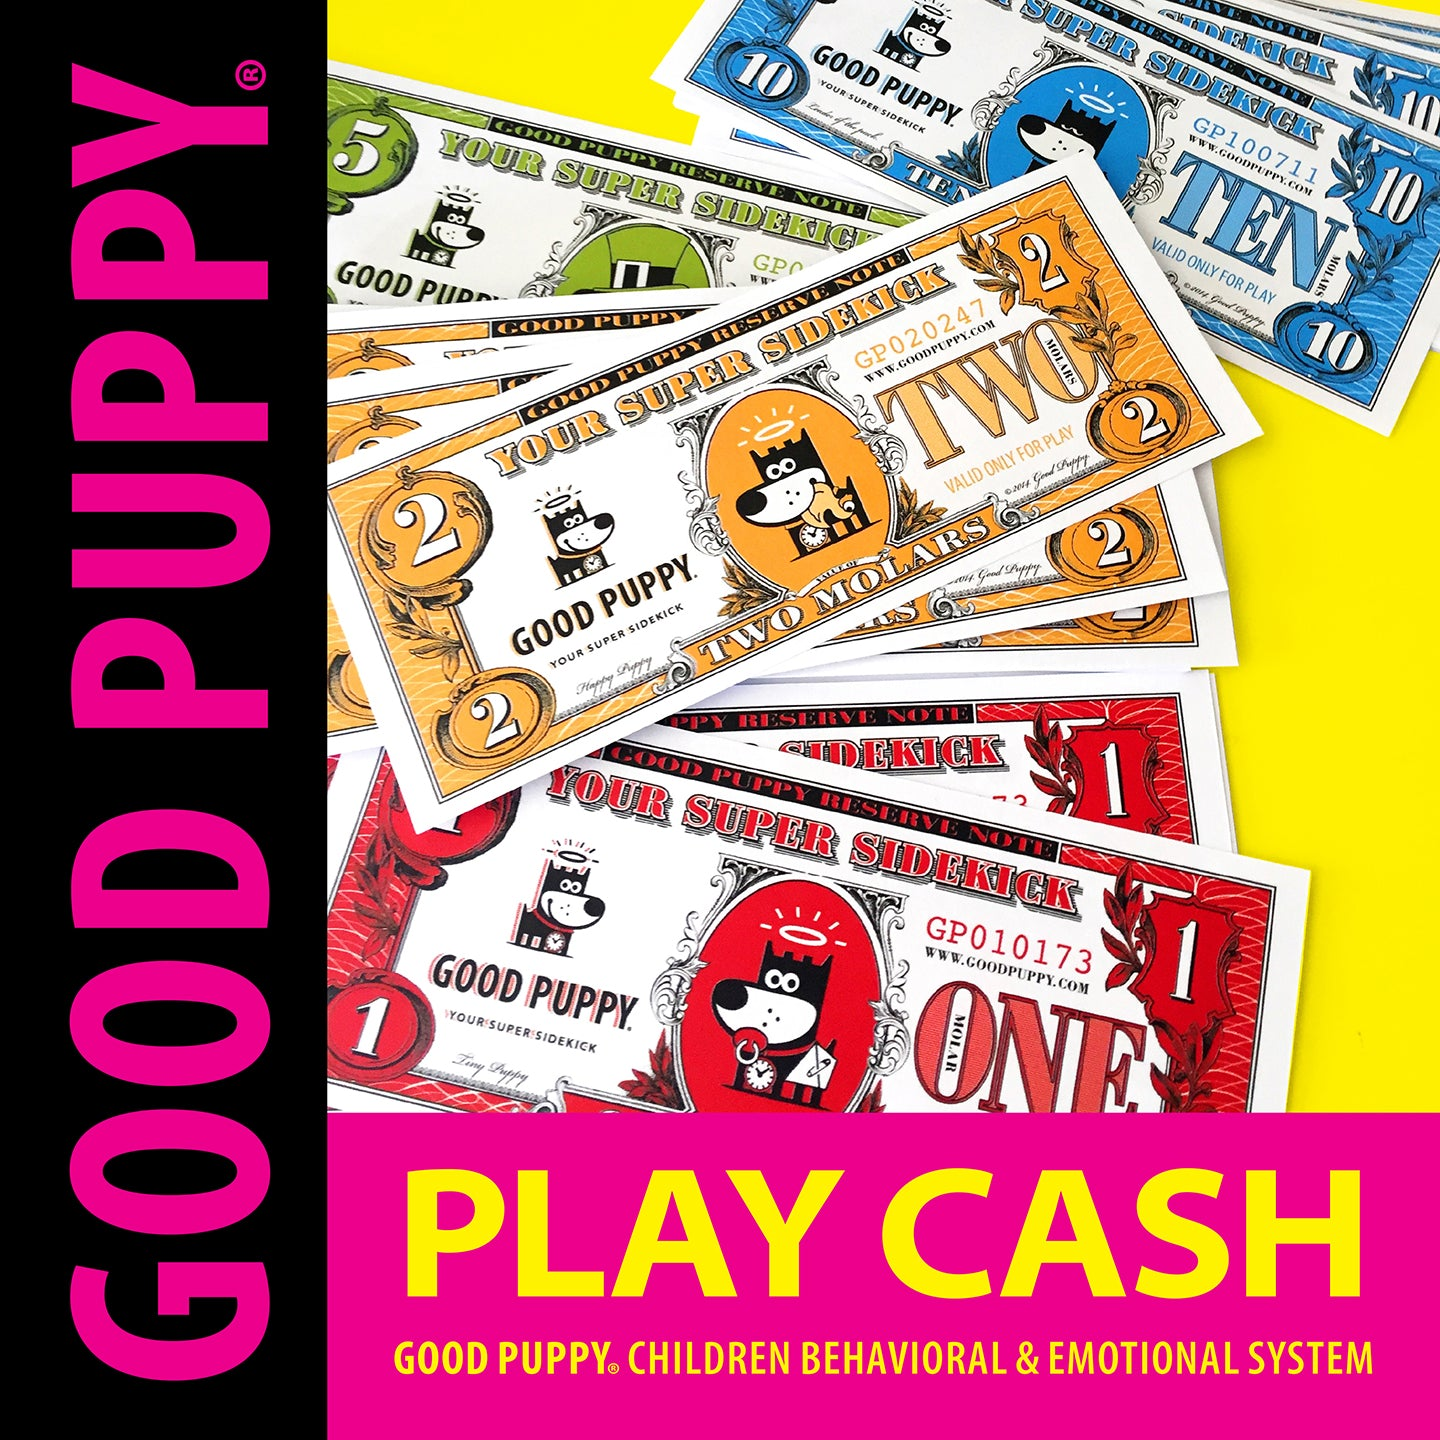 Printable PDF . Play Cash